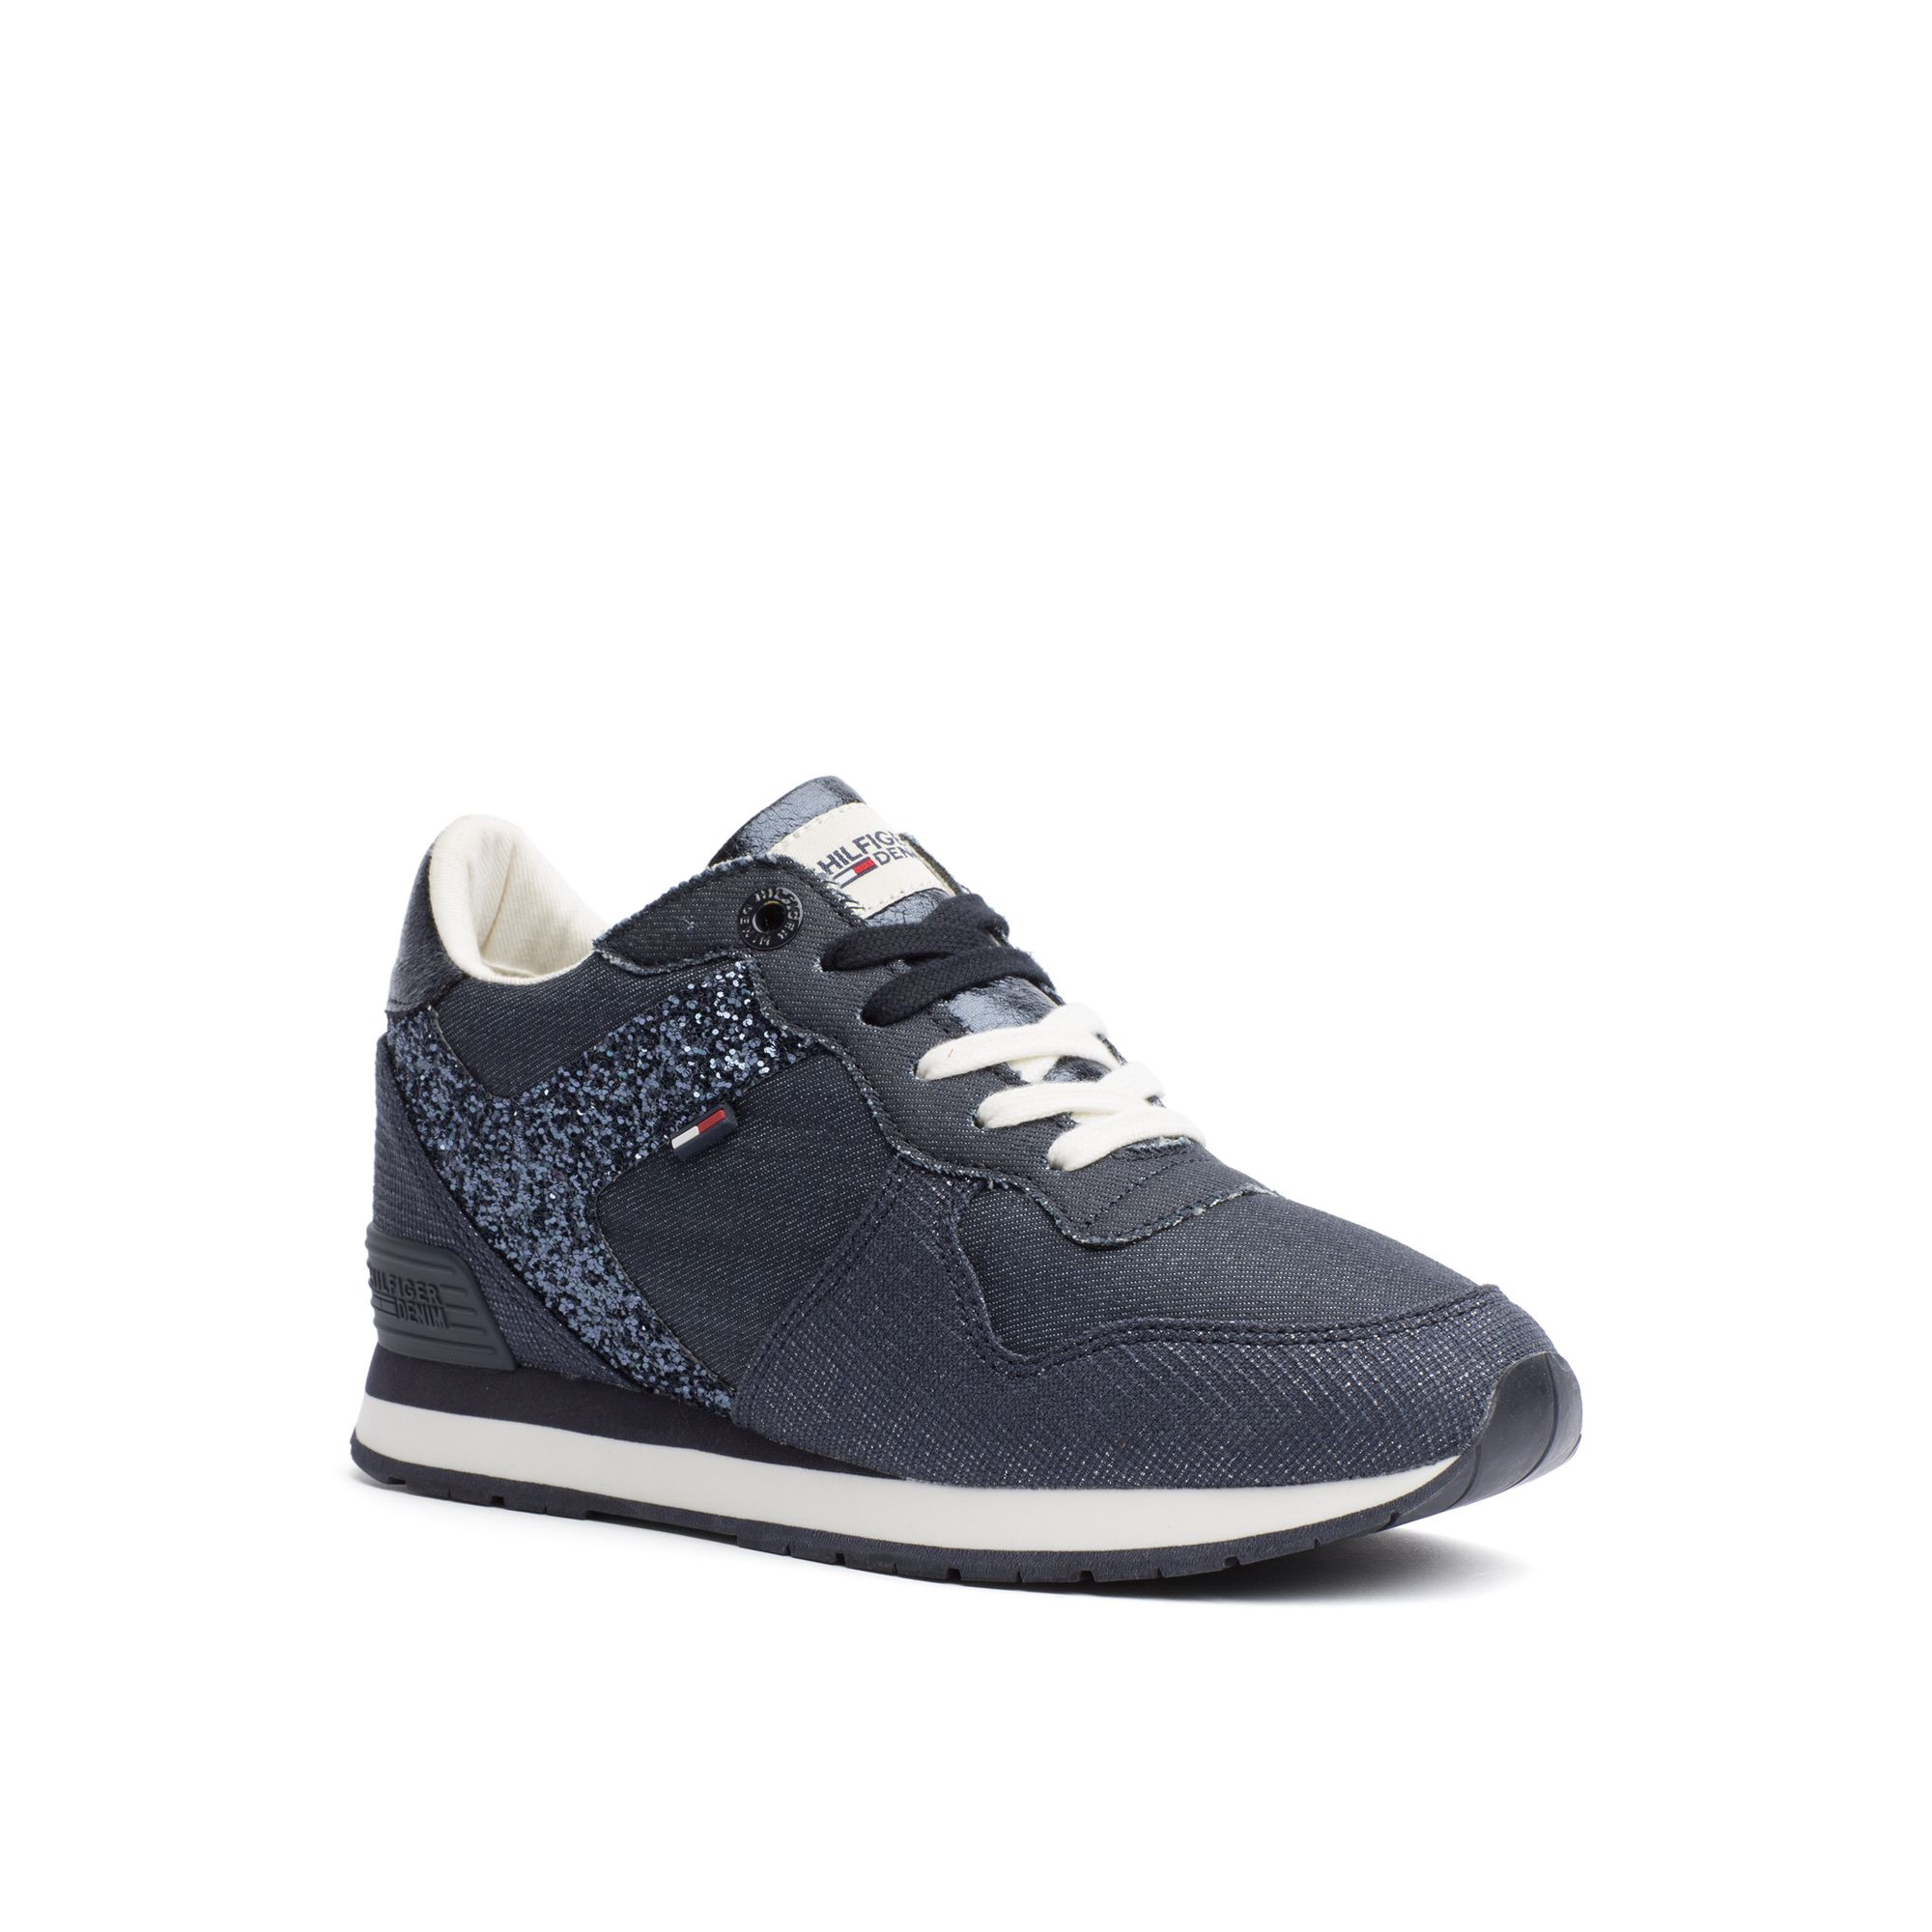 Olydnad förorening royalty  Tommy Hilfiger Final Sale-hilfiger Denim Sparkle Sneaker ...